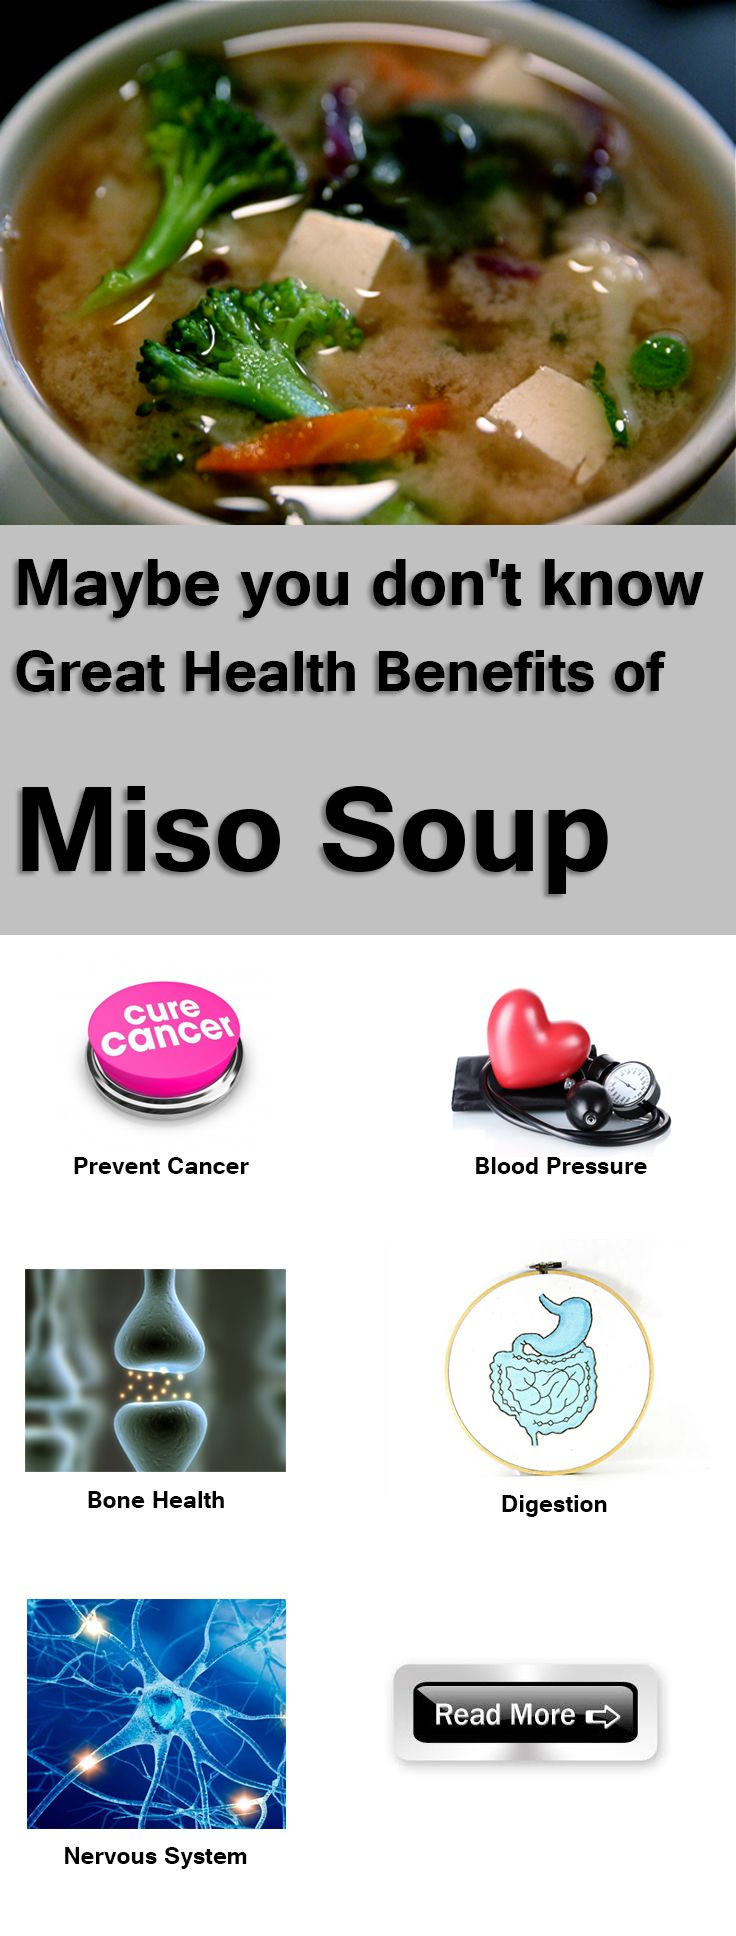 Mayby you don's know Great Health Benefits of Miso Soup